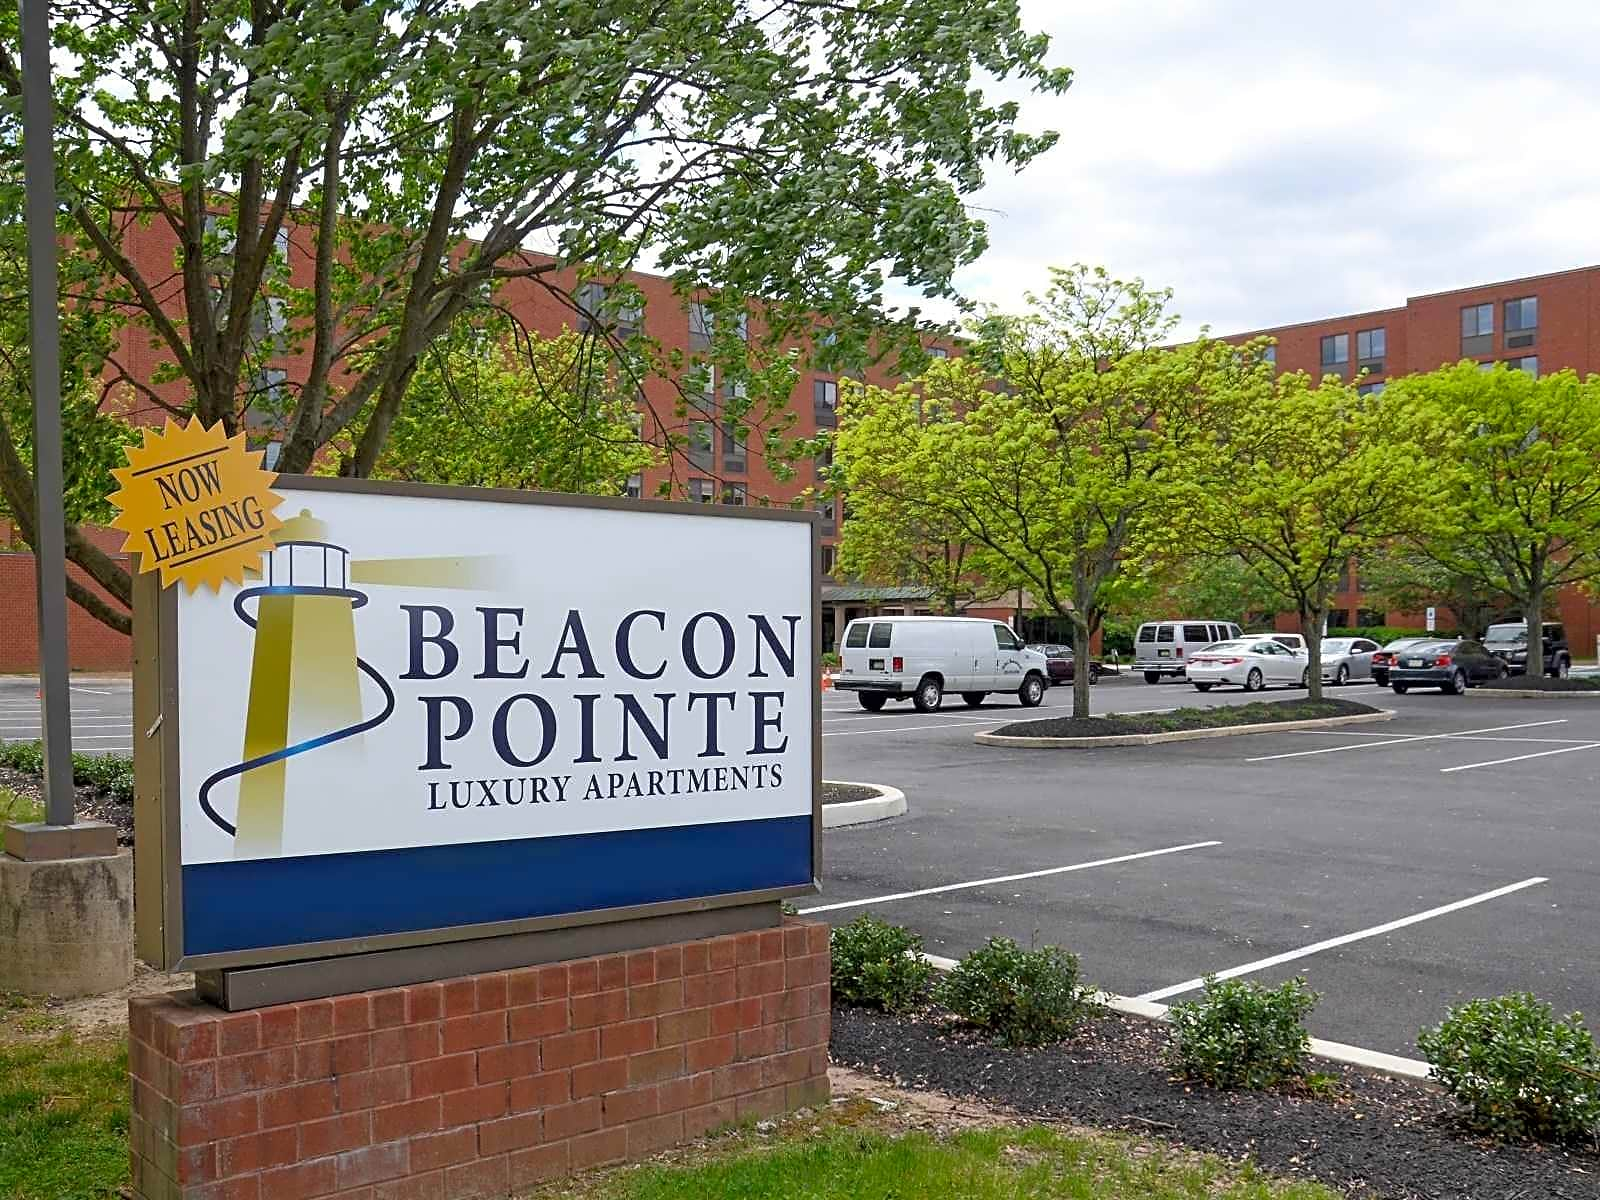 Beacon Pointe Apartments Philadelphia PA